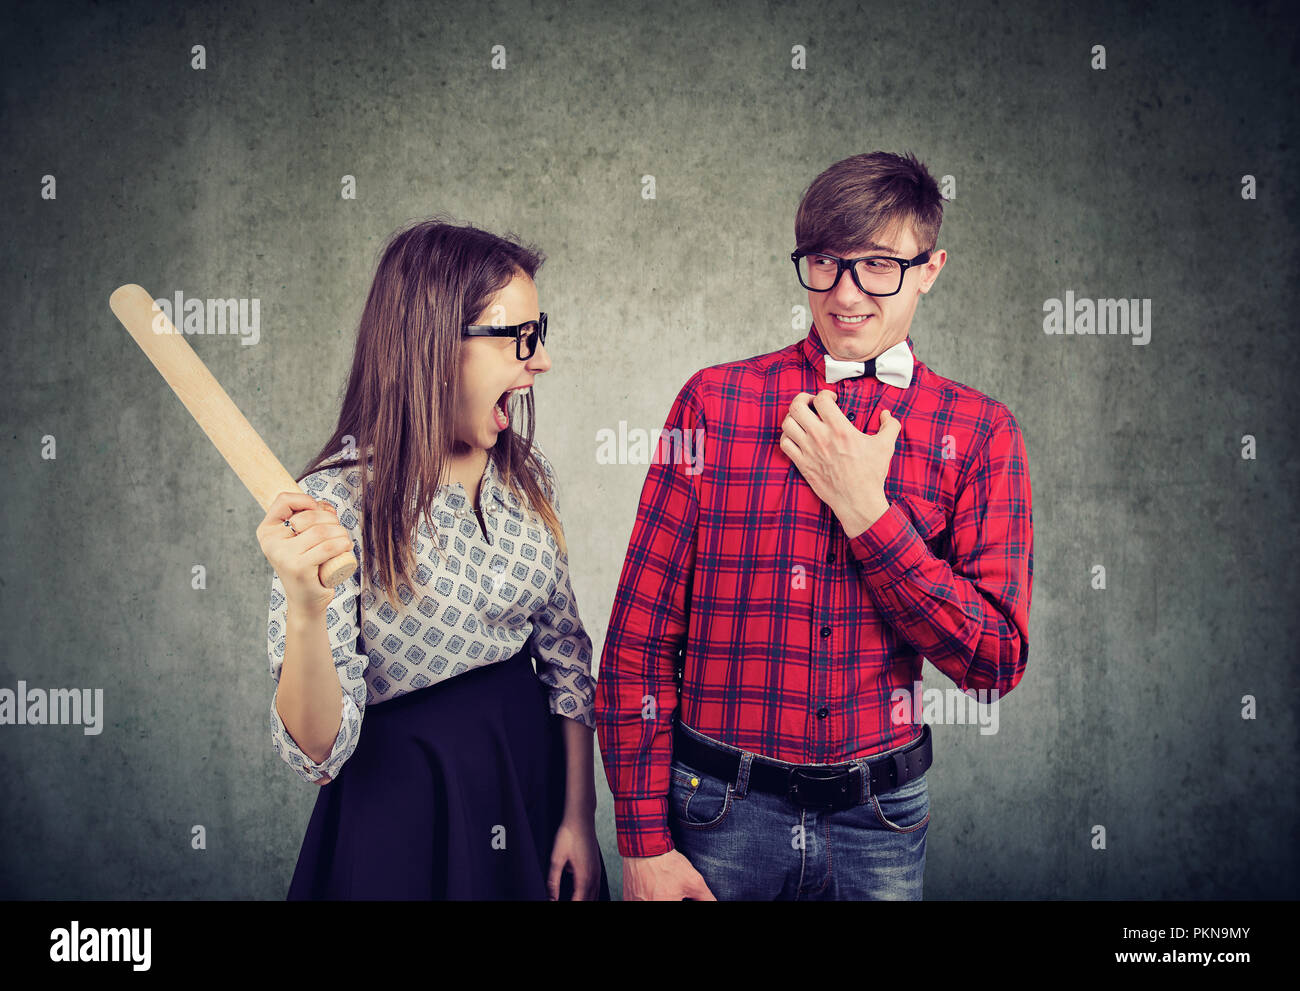 Young woman with rolling pin looking crazy while arguing with man on gray background - Stock Image